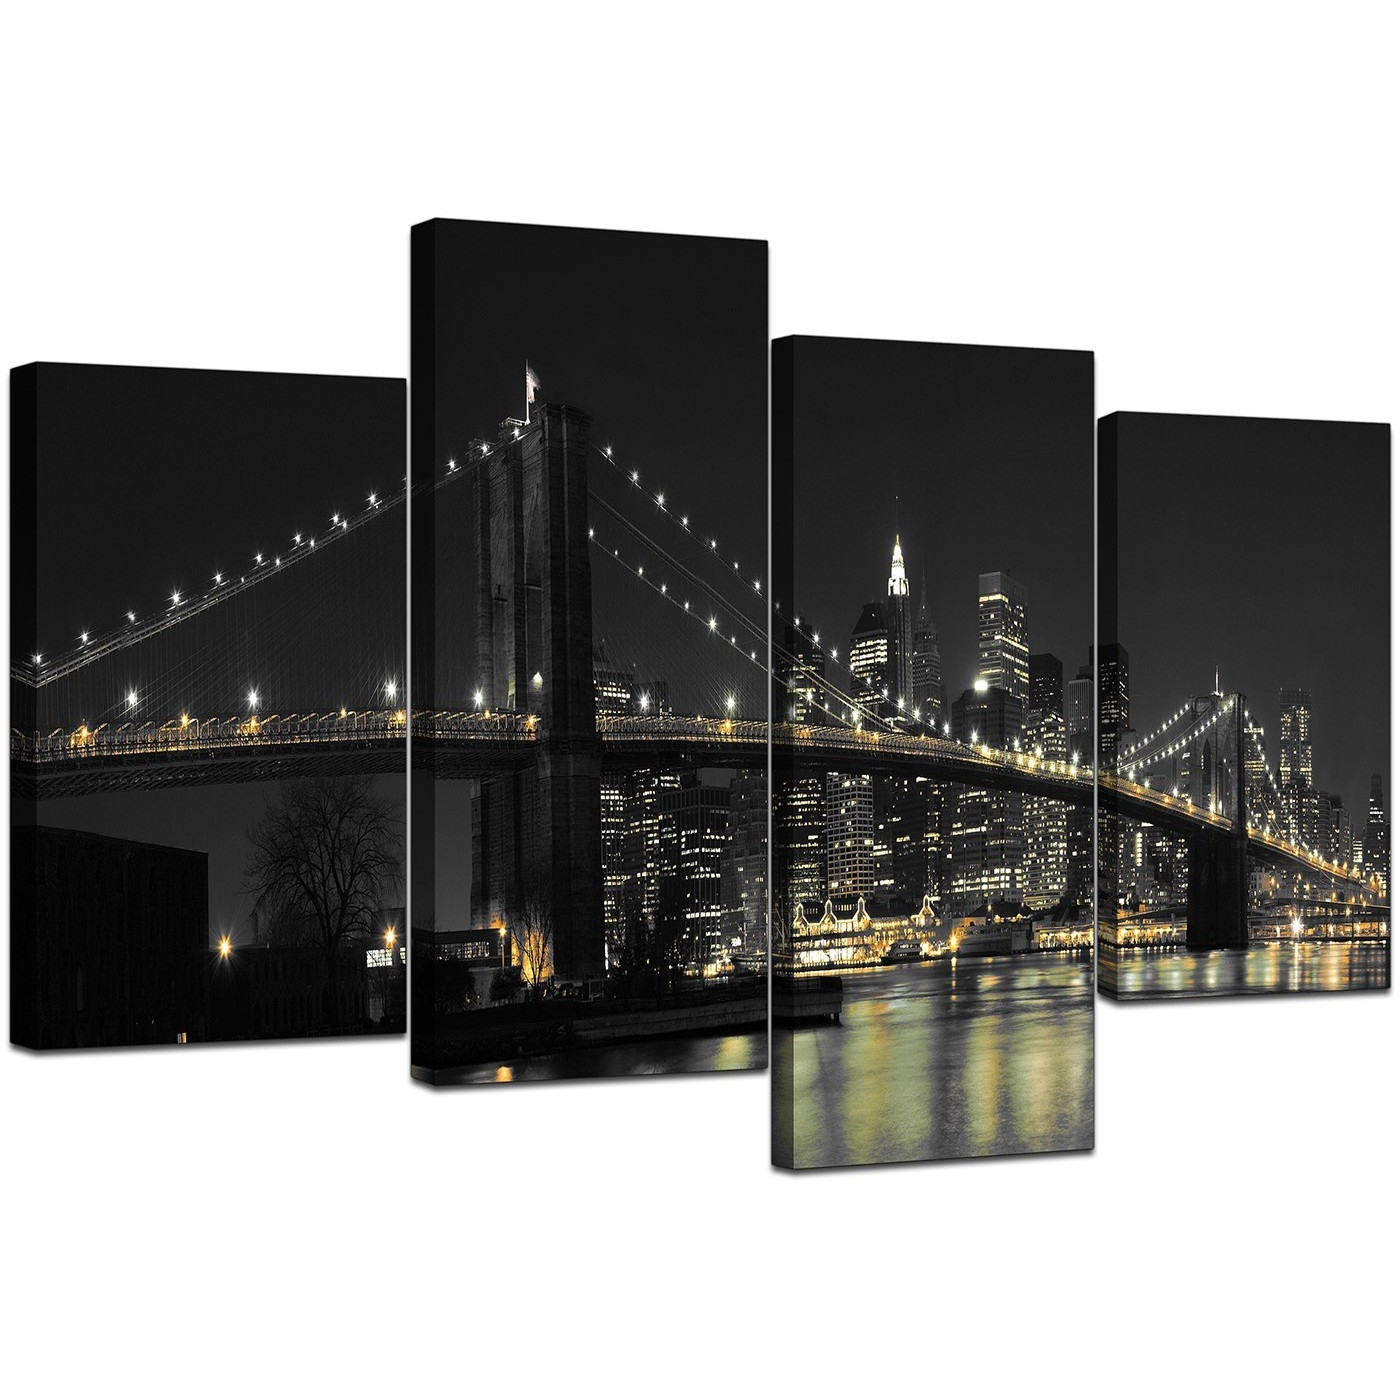 Canvas Wall Art Of New York For Your Office - 4 Part with New York City Wall Art (Image 7 of 20)